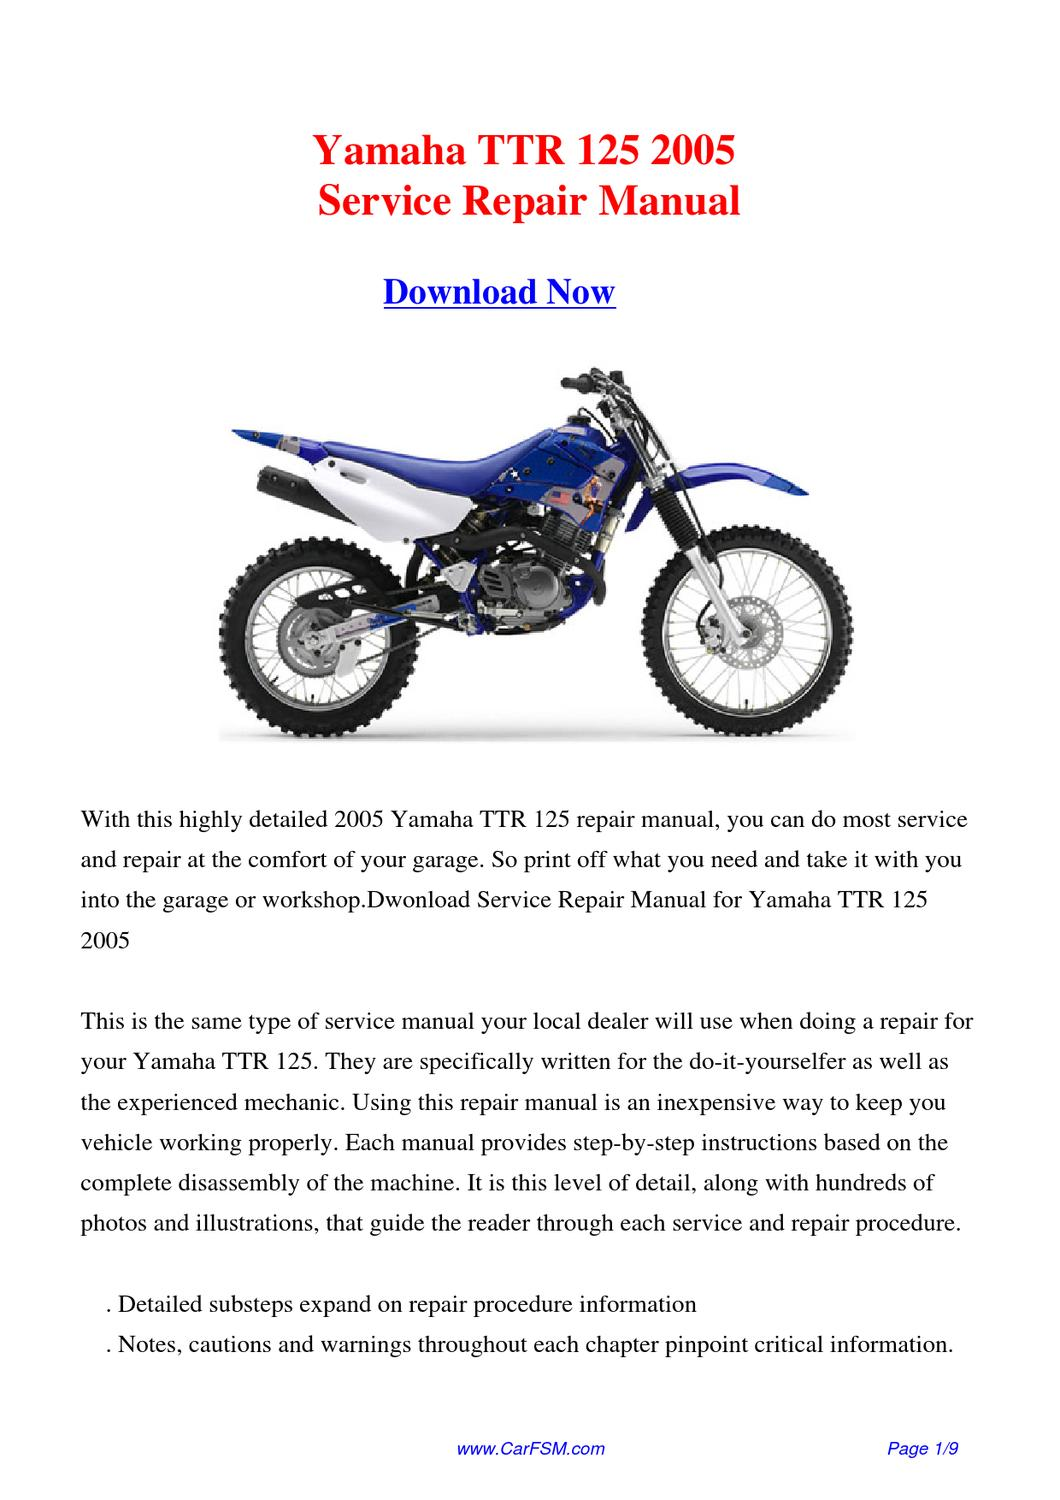 Yamaha ttr 125 2005 repair manual by gong dang issuu for Yamaha ysp 5600 manual